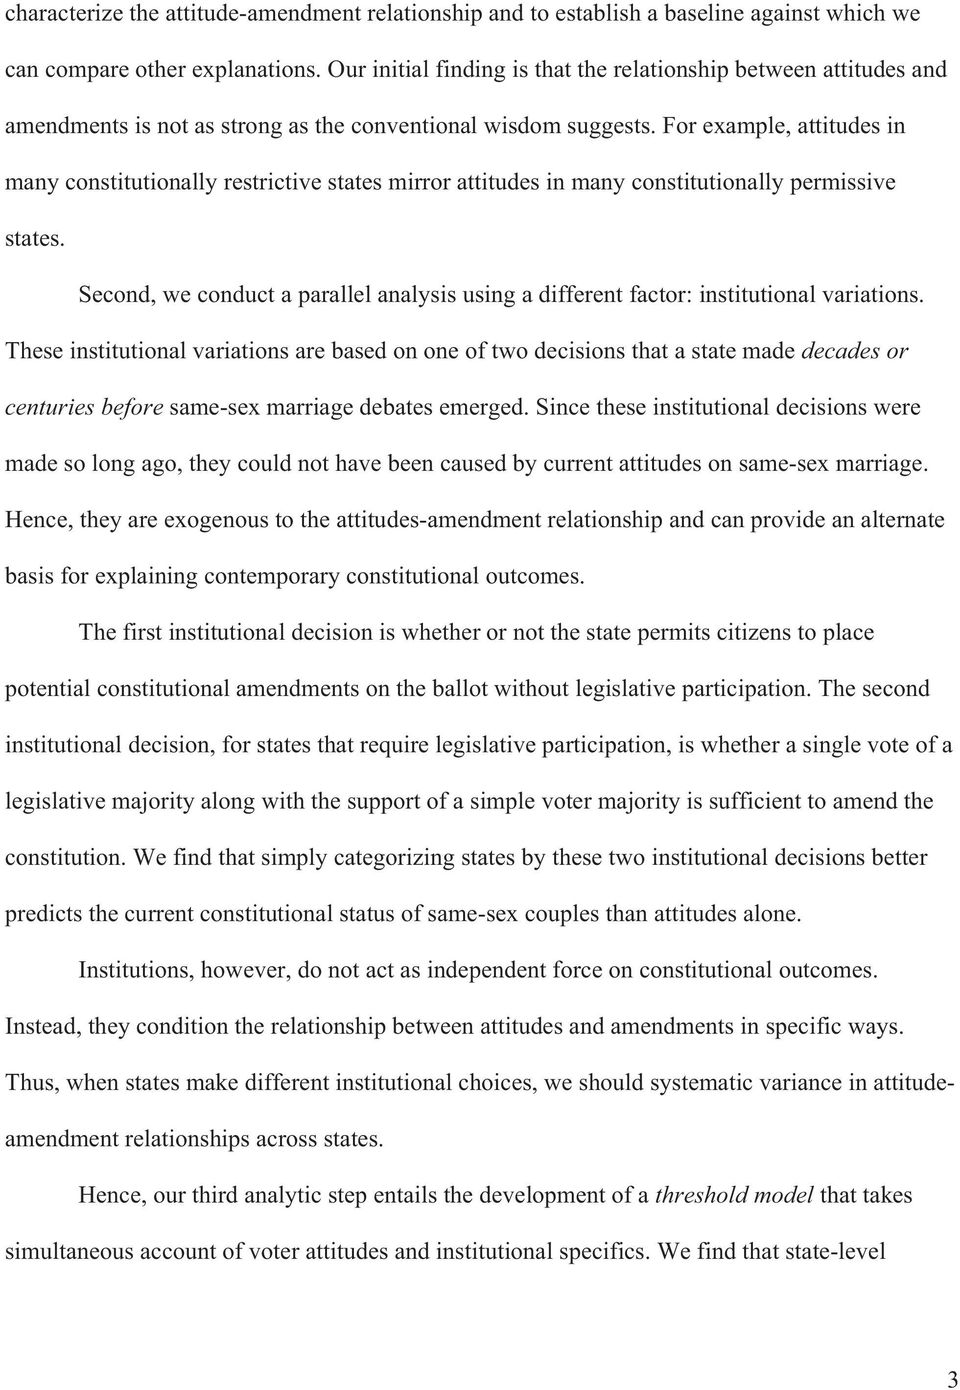 For example, attitudes in many constitutionally restrictive states mirror attitudes in many constitutionally permissive states.